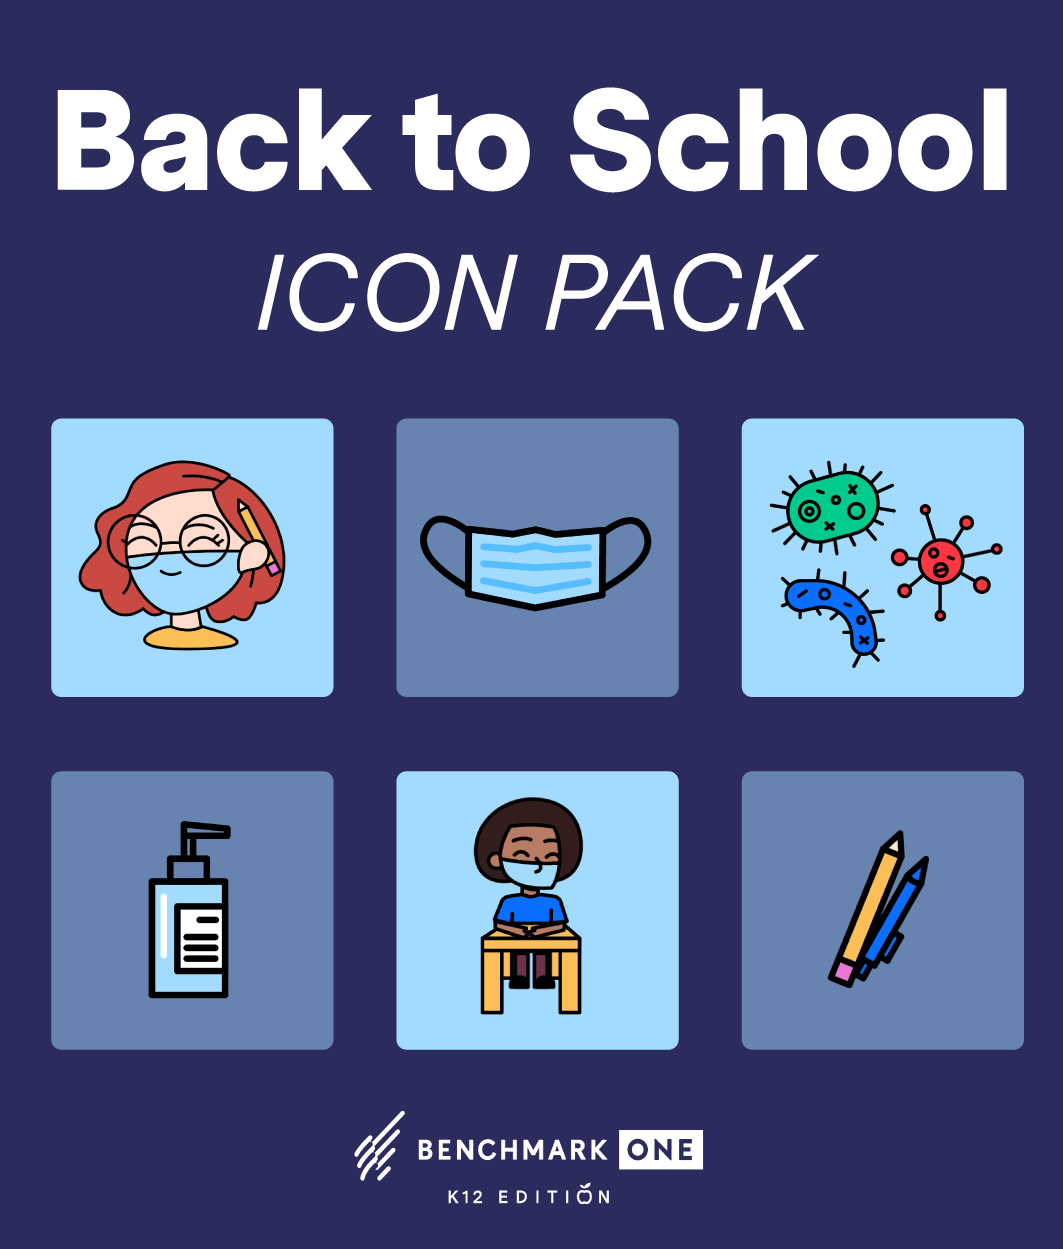 Images-for-Back-to-School-Icon-Pack_3